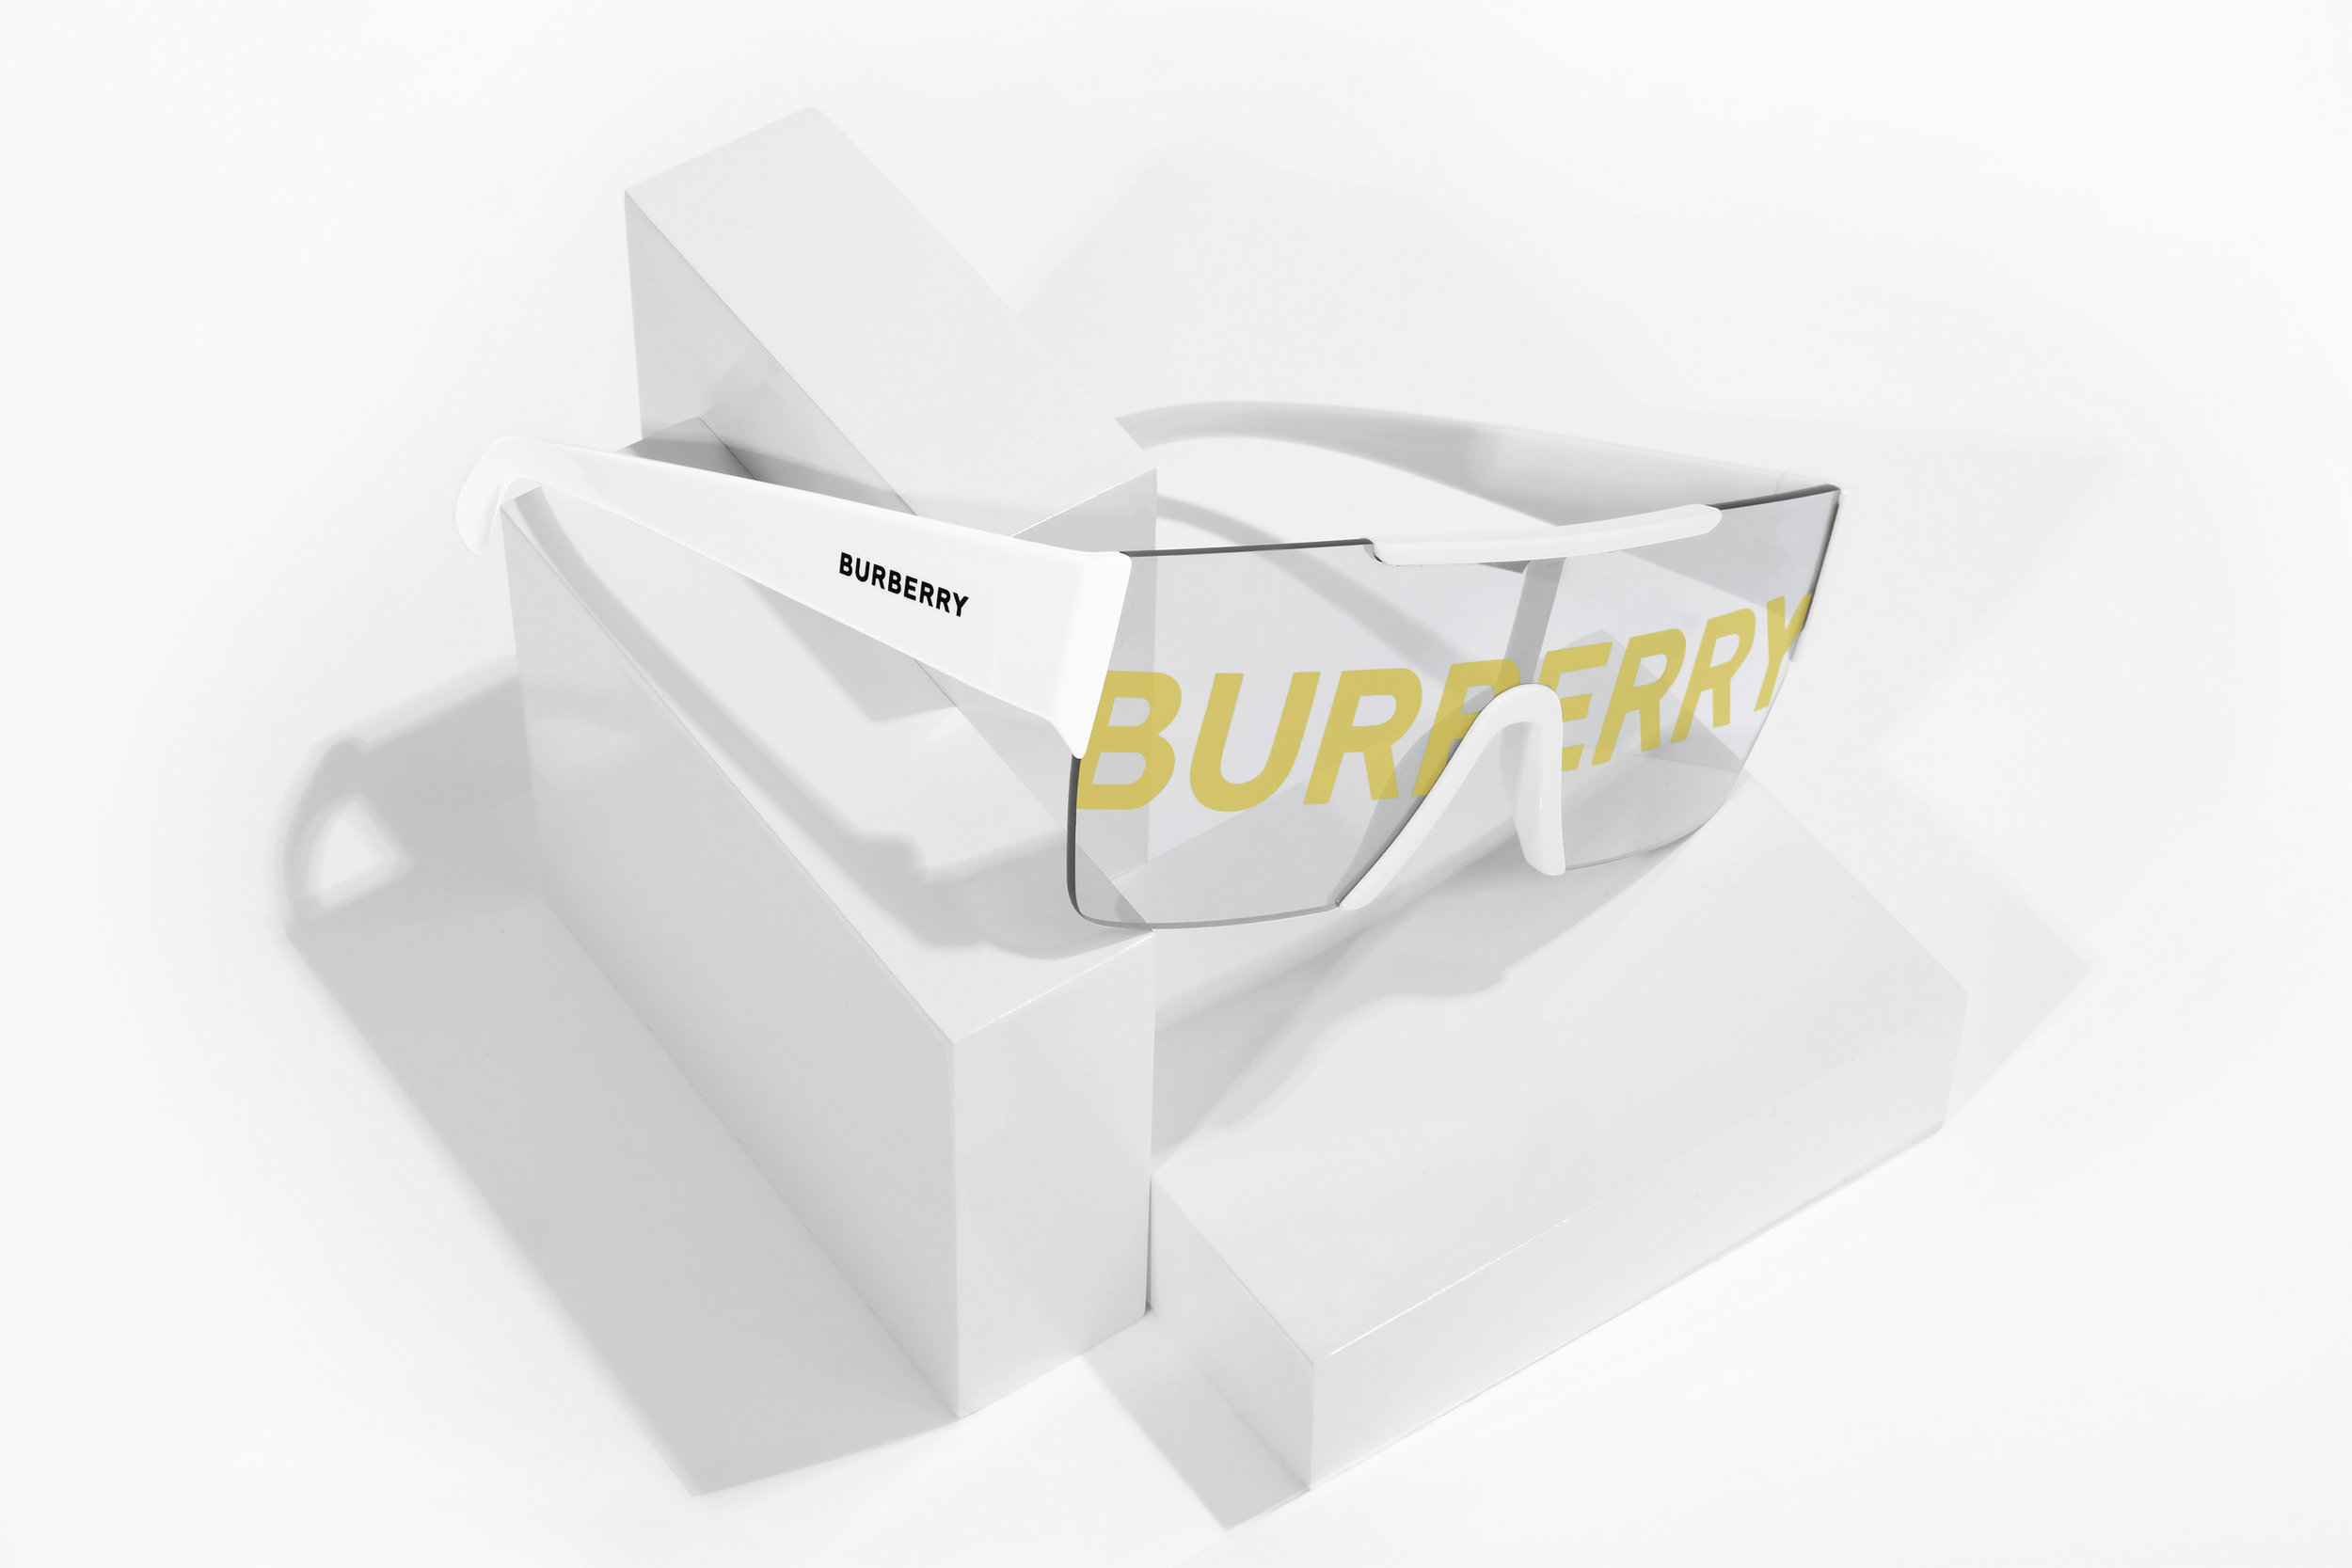 Sunglass-Burberry-2-web.jpg